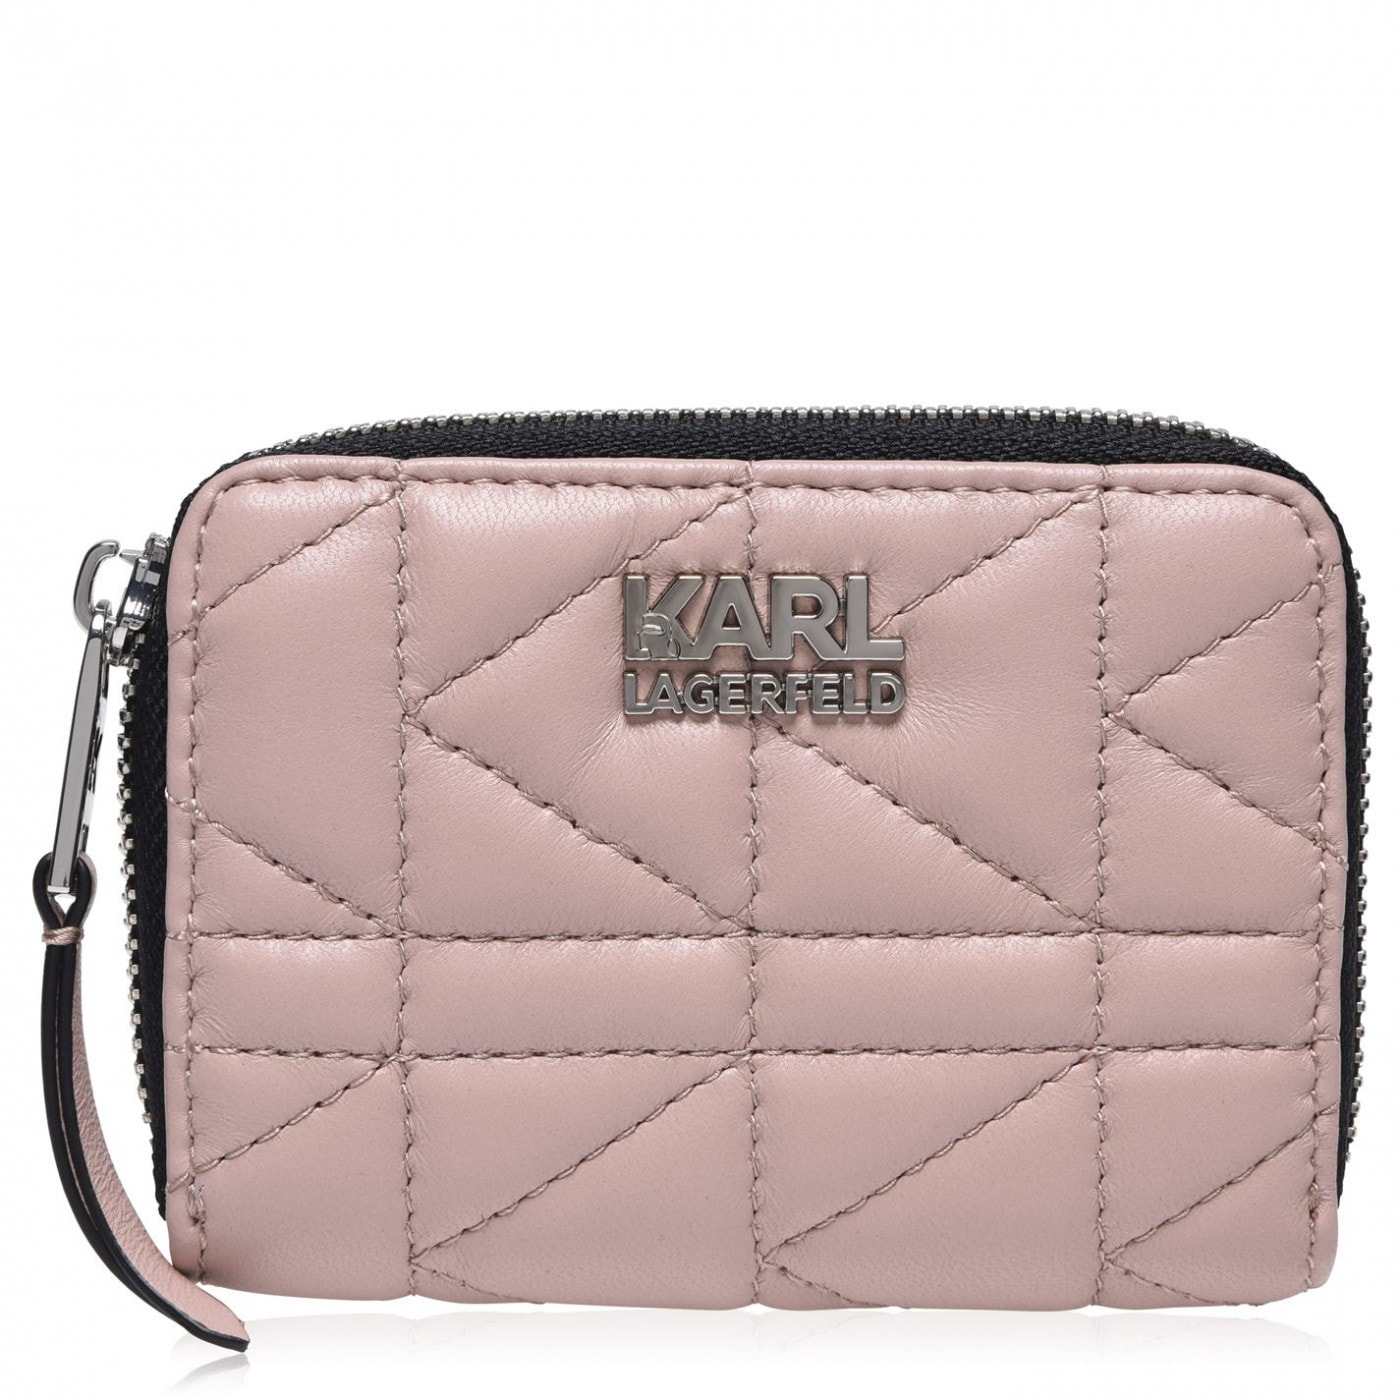 Karl Lagerfeld Kuilted Small Zip Around Purse